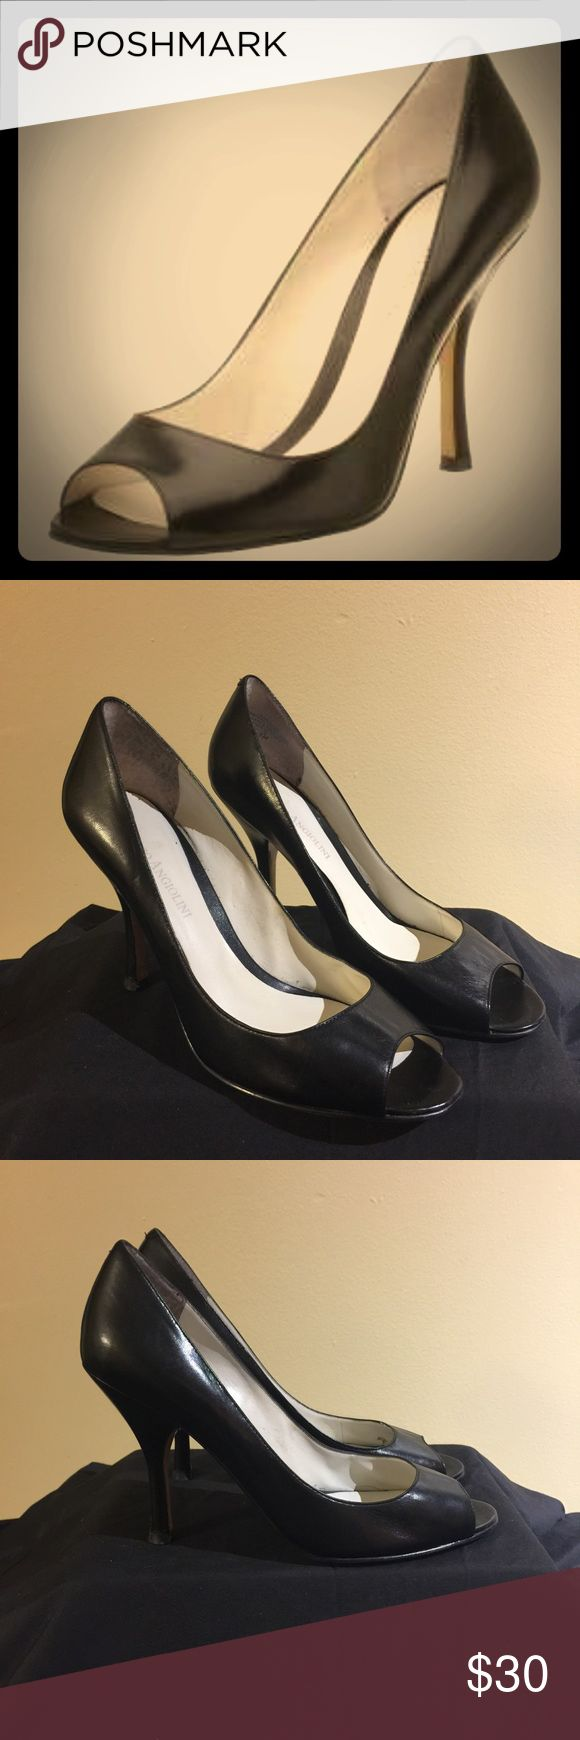 "Enzo Angiolini Black Peep Toe Heels Enzo Angiolini Black Peep Toe Heels, Size 7, 4"" Heel, Leather Upper, Minor Scratches on Heels, most comfortable pair of heels I owned Enzo Angiolini Shoes Heels"